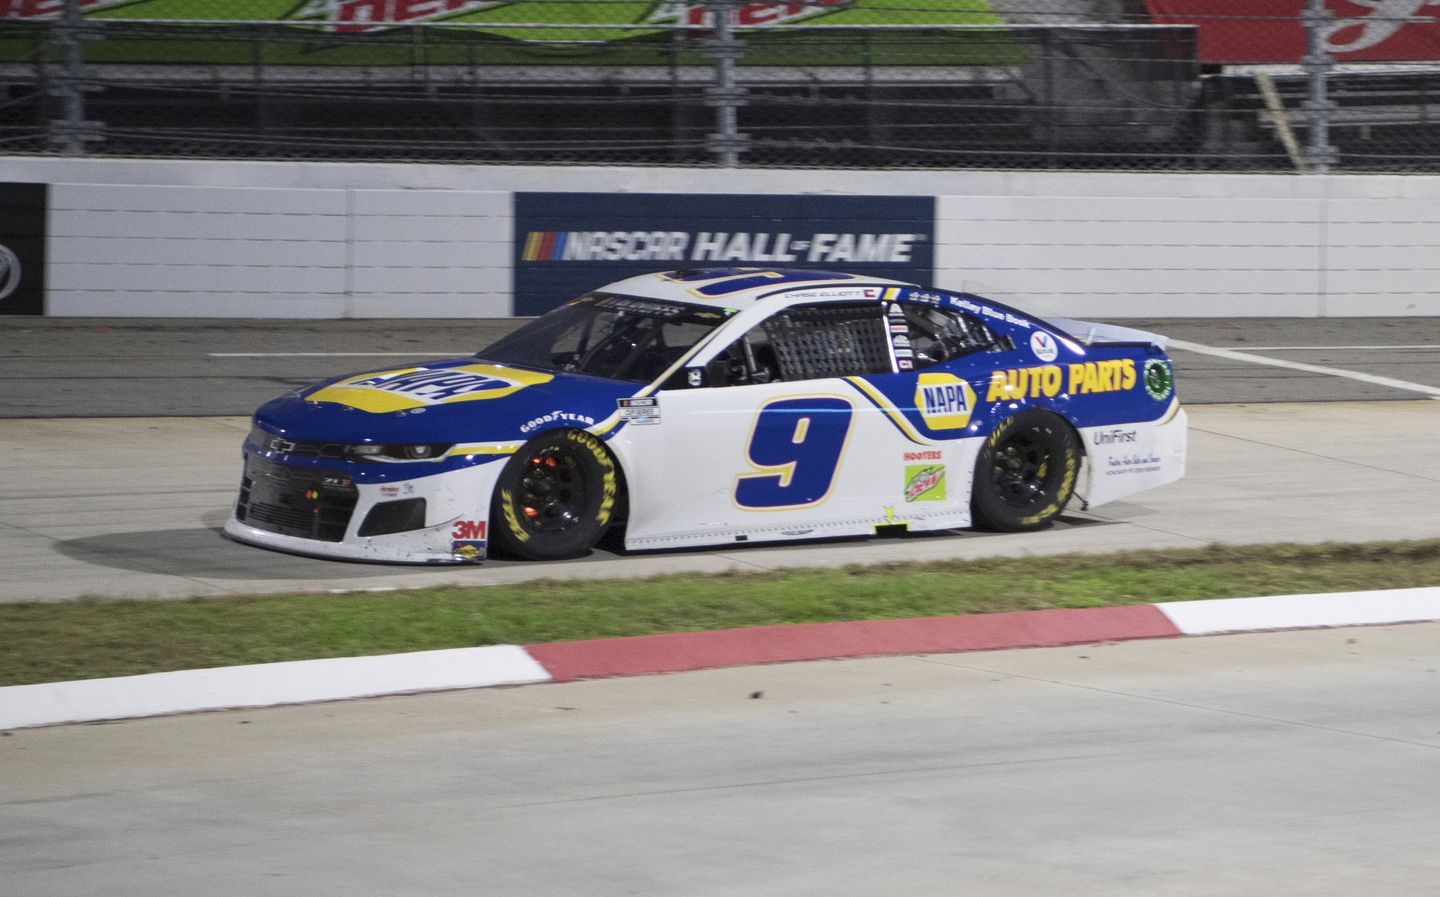 Kevin Harvick eliminated as Chase Elliott races into NASCAR championship